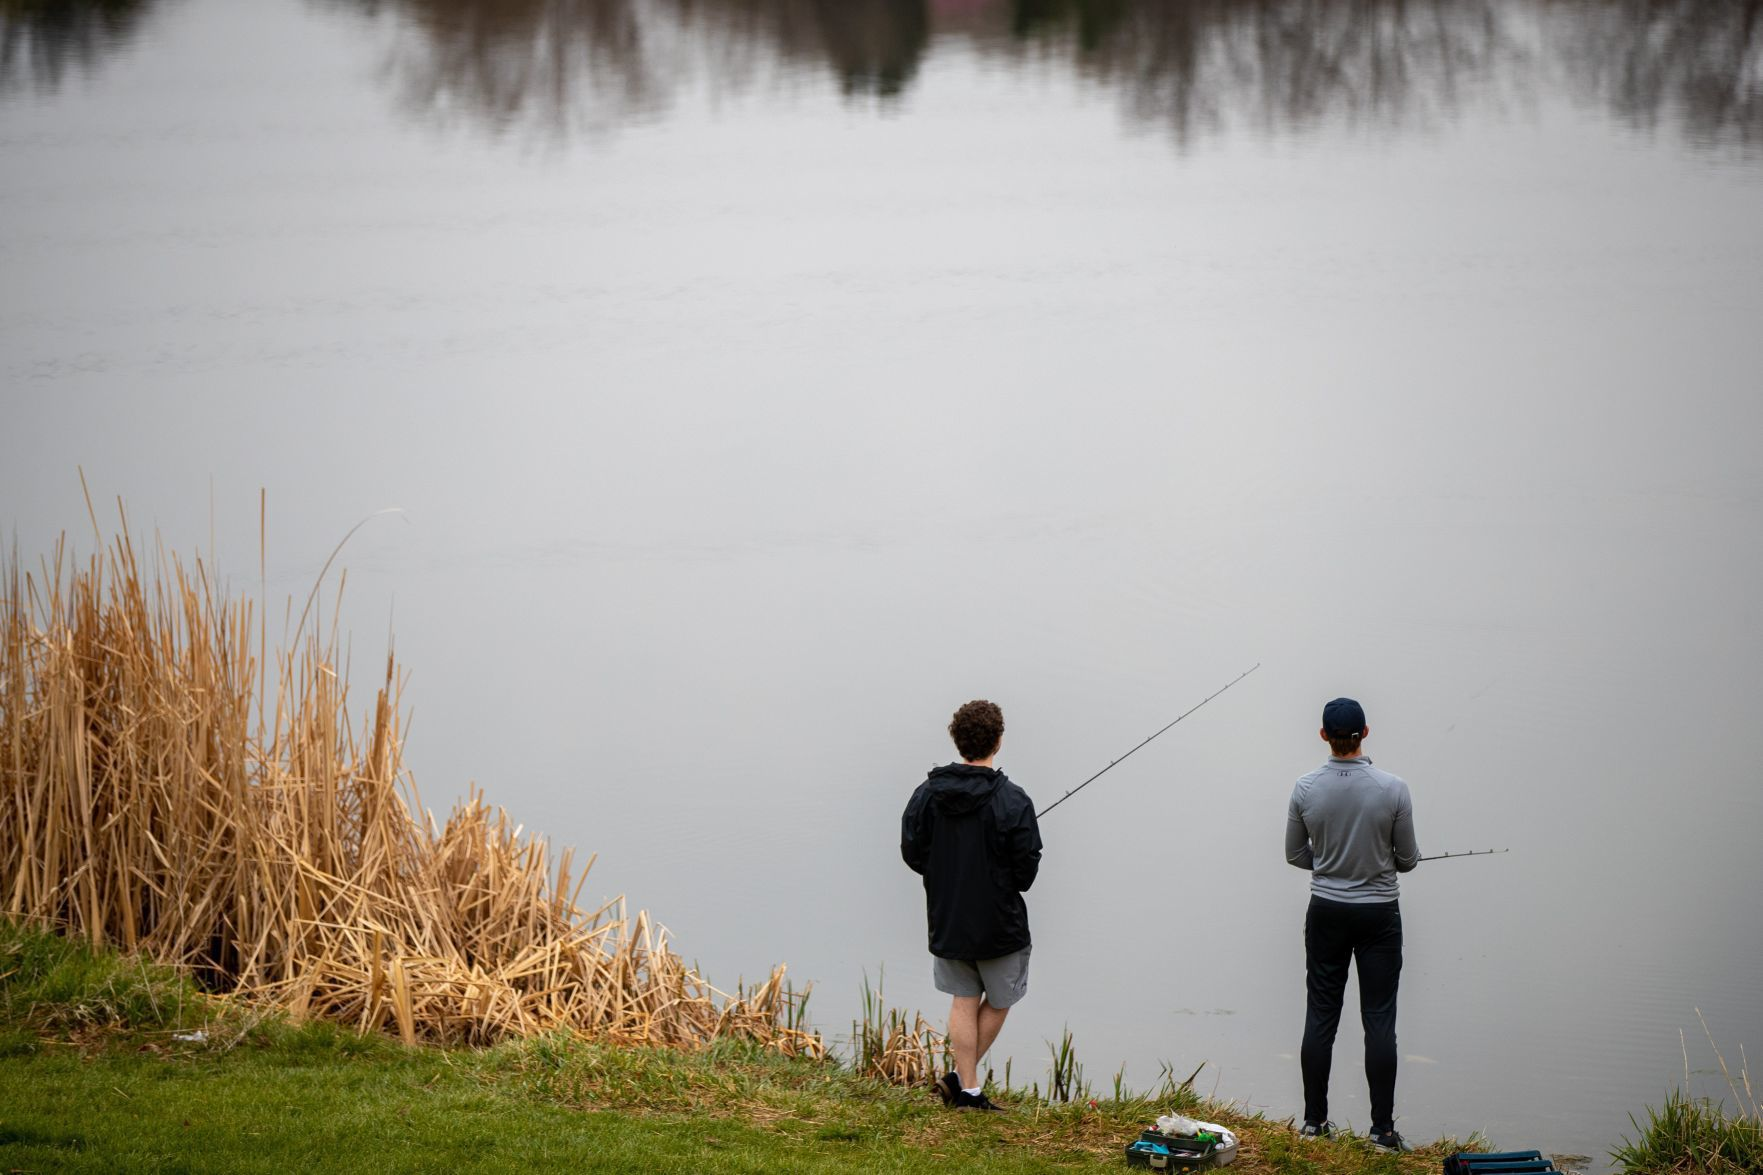 Sales of fishing permits up as Nebraskans seek comfort